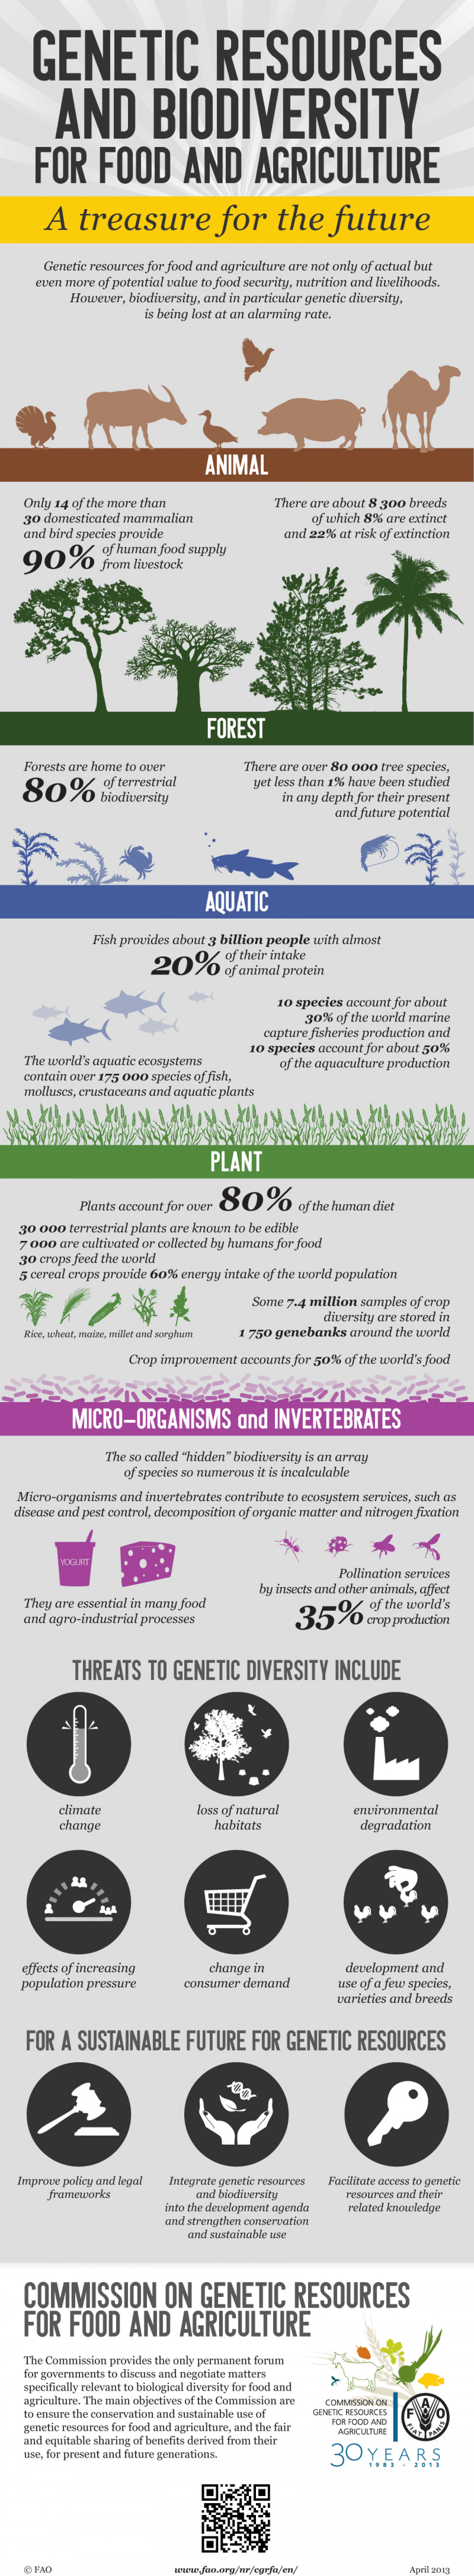 Genetic Resources and Biodiversity for Food and Agriculture  Infographic